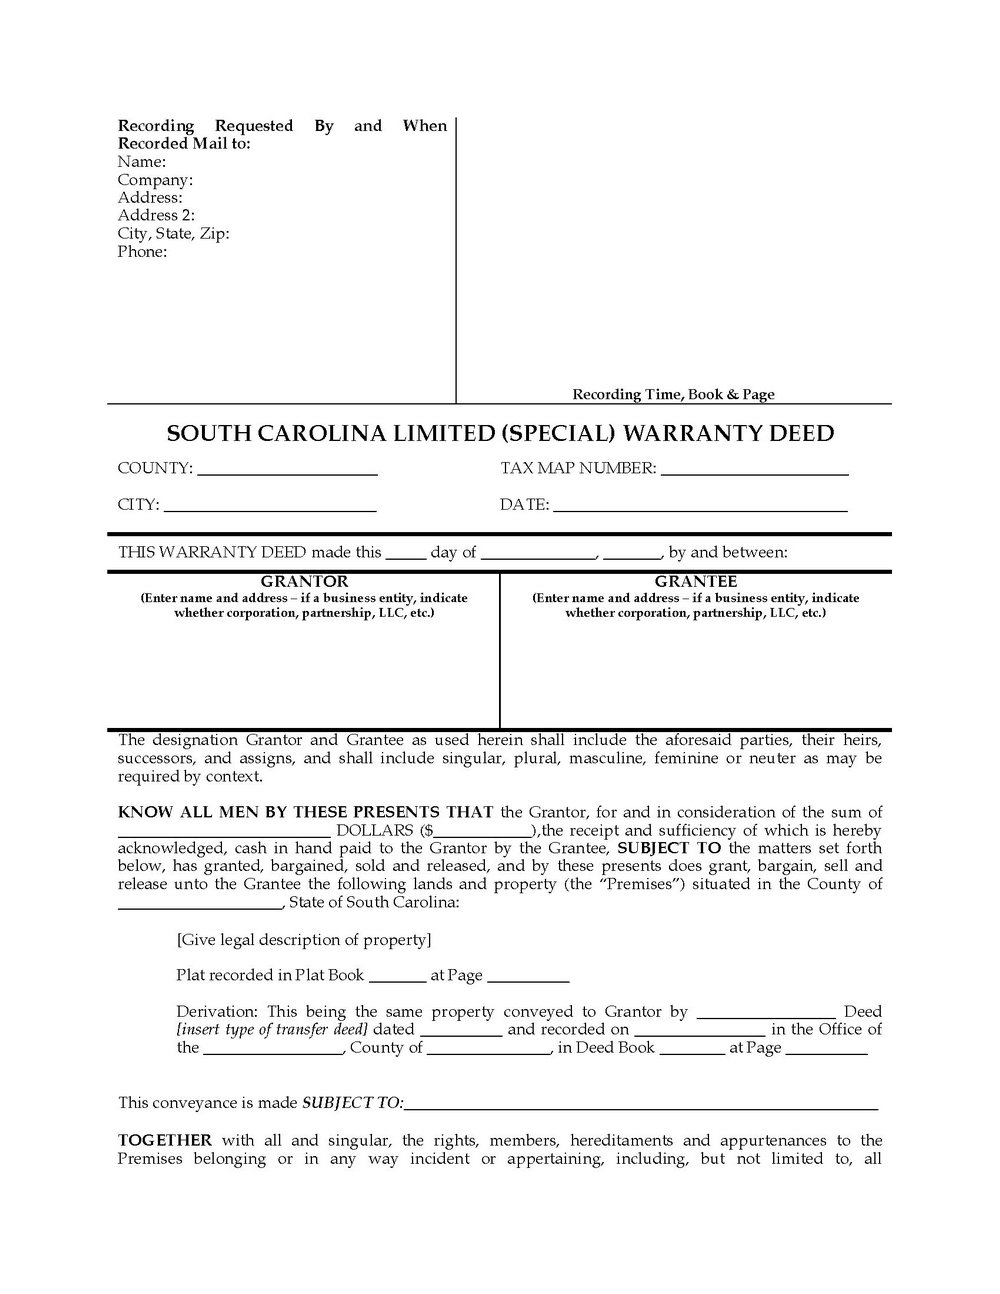 Warranty Deed Form California